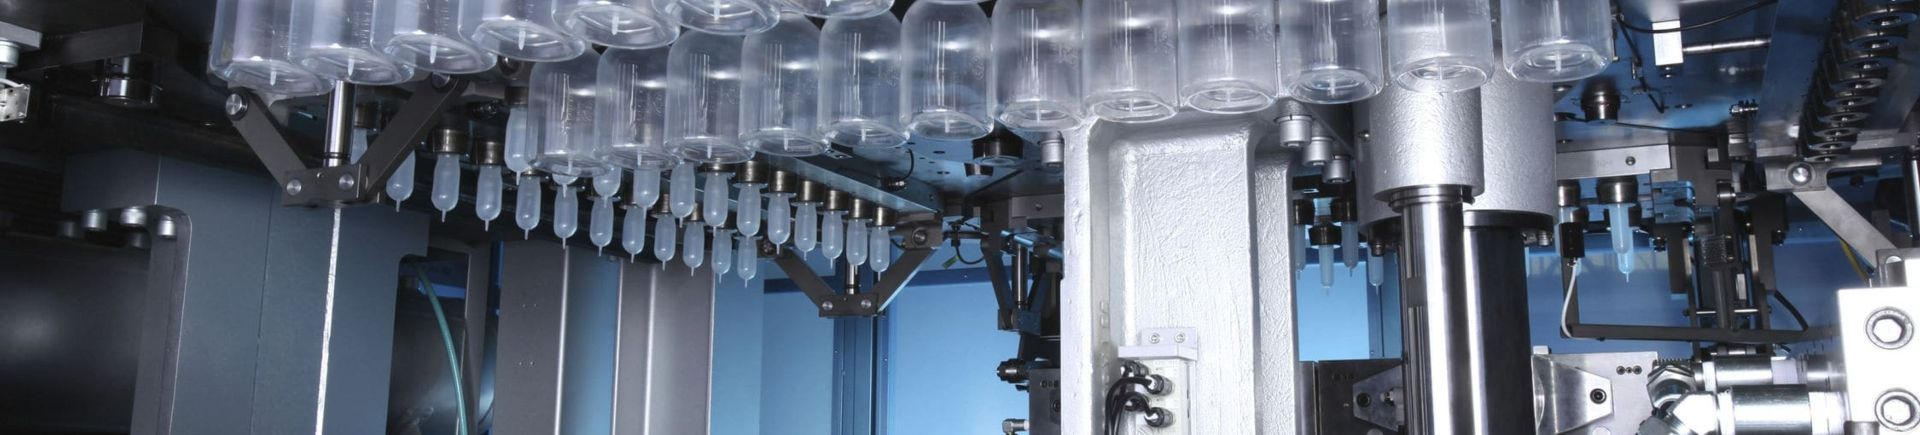 Amcor-injection blow molding